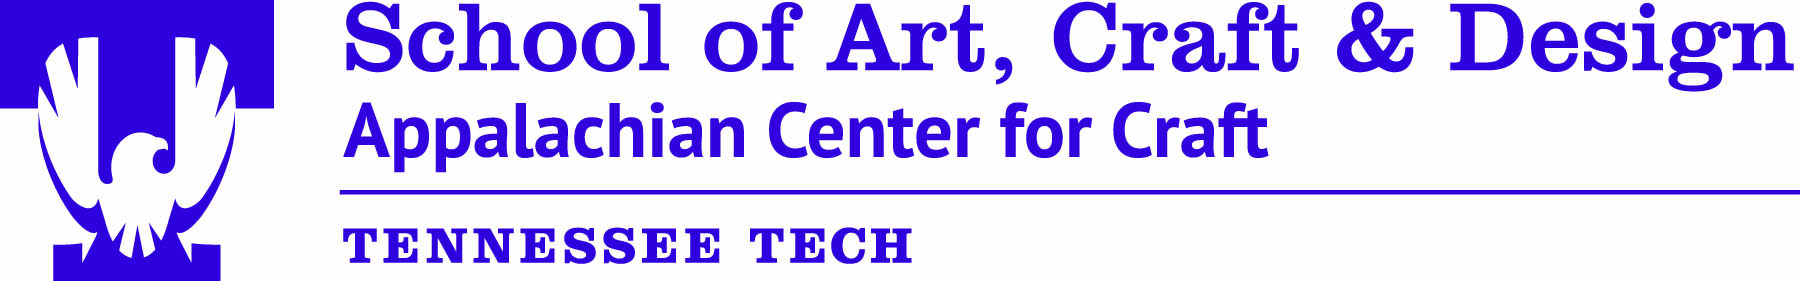 Appalachian Center for Craft, Tennessee Tech University logo.jpg